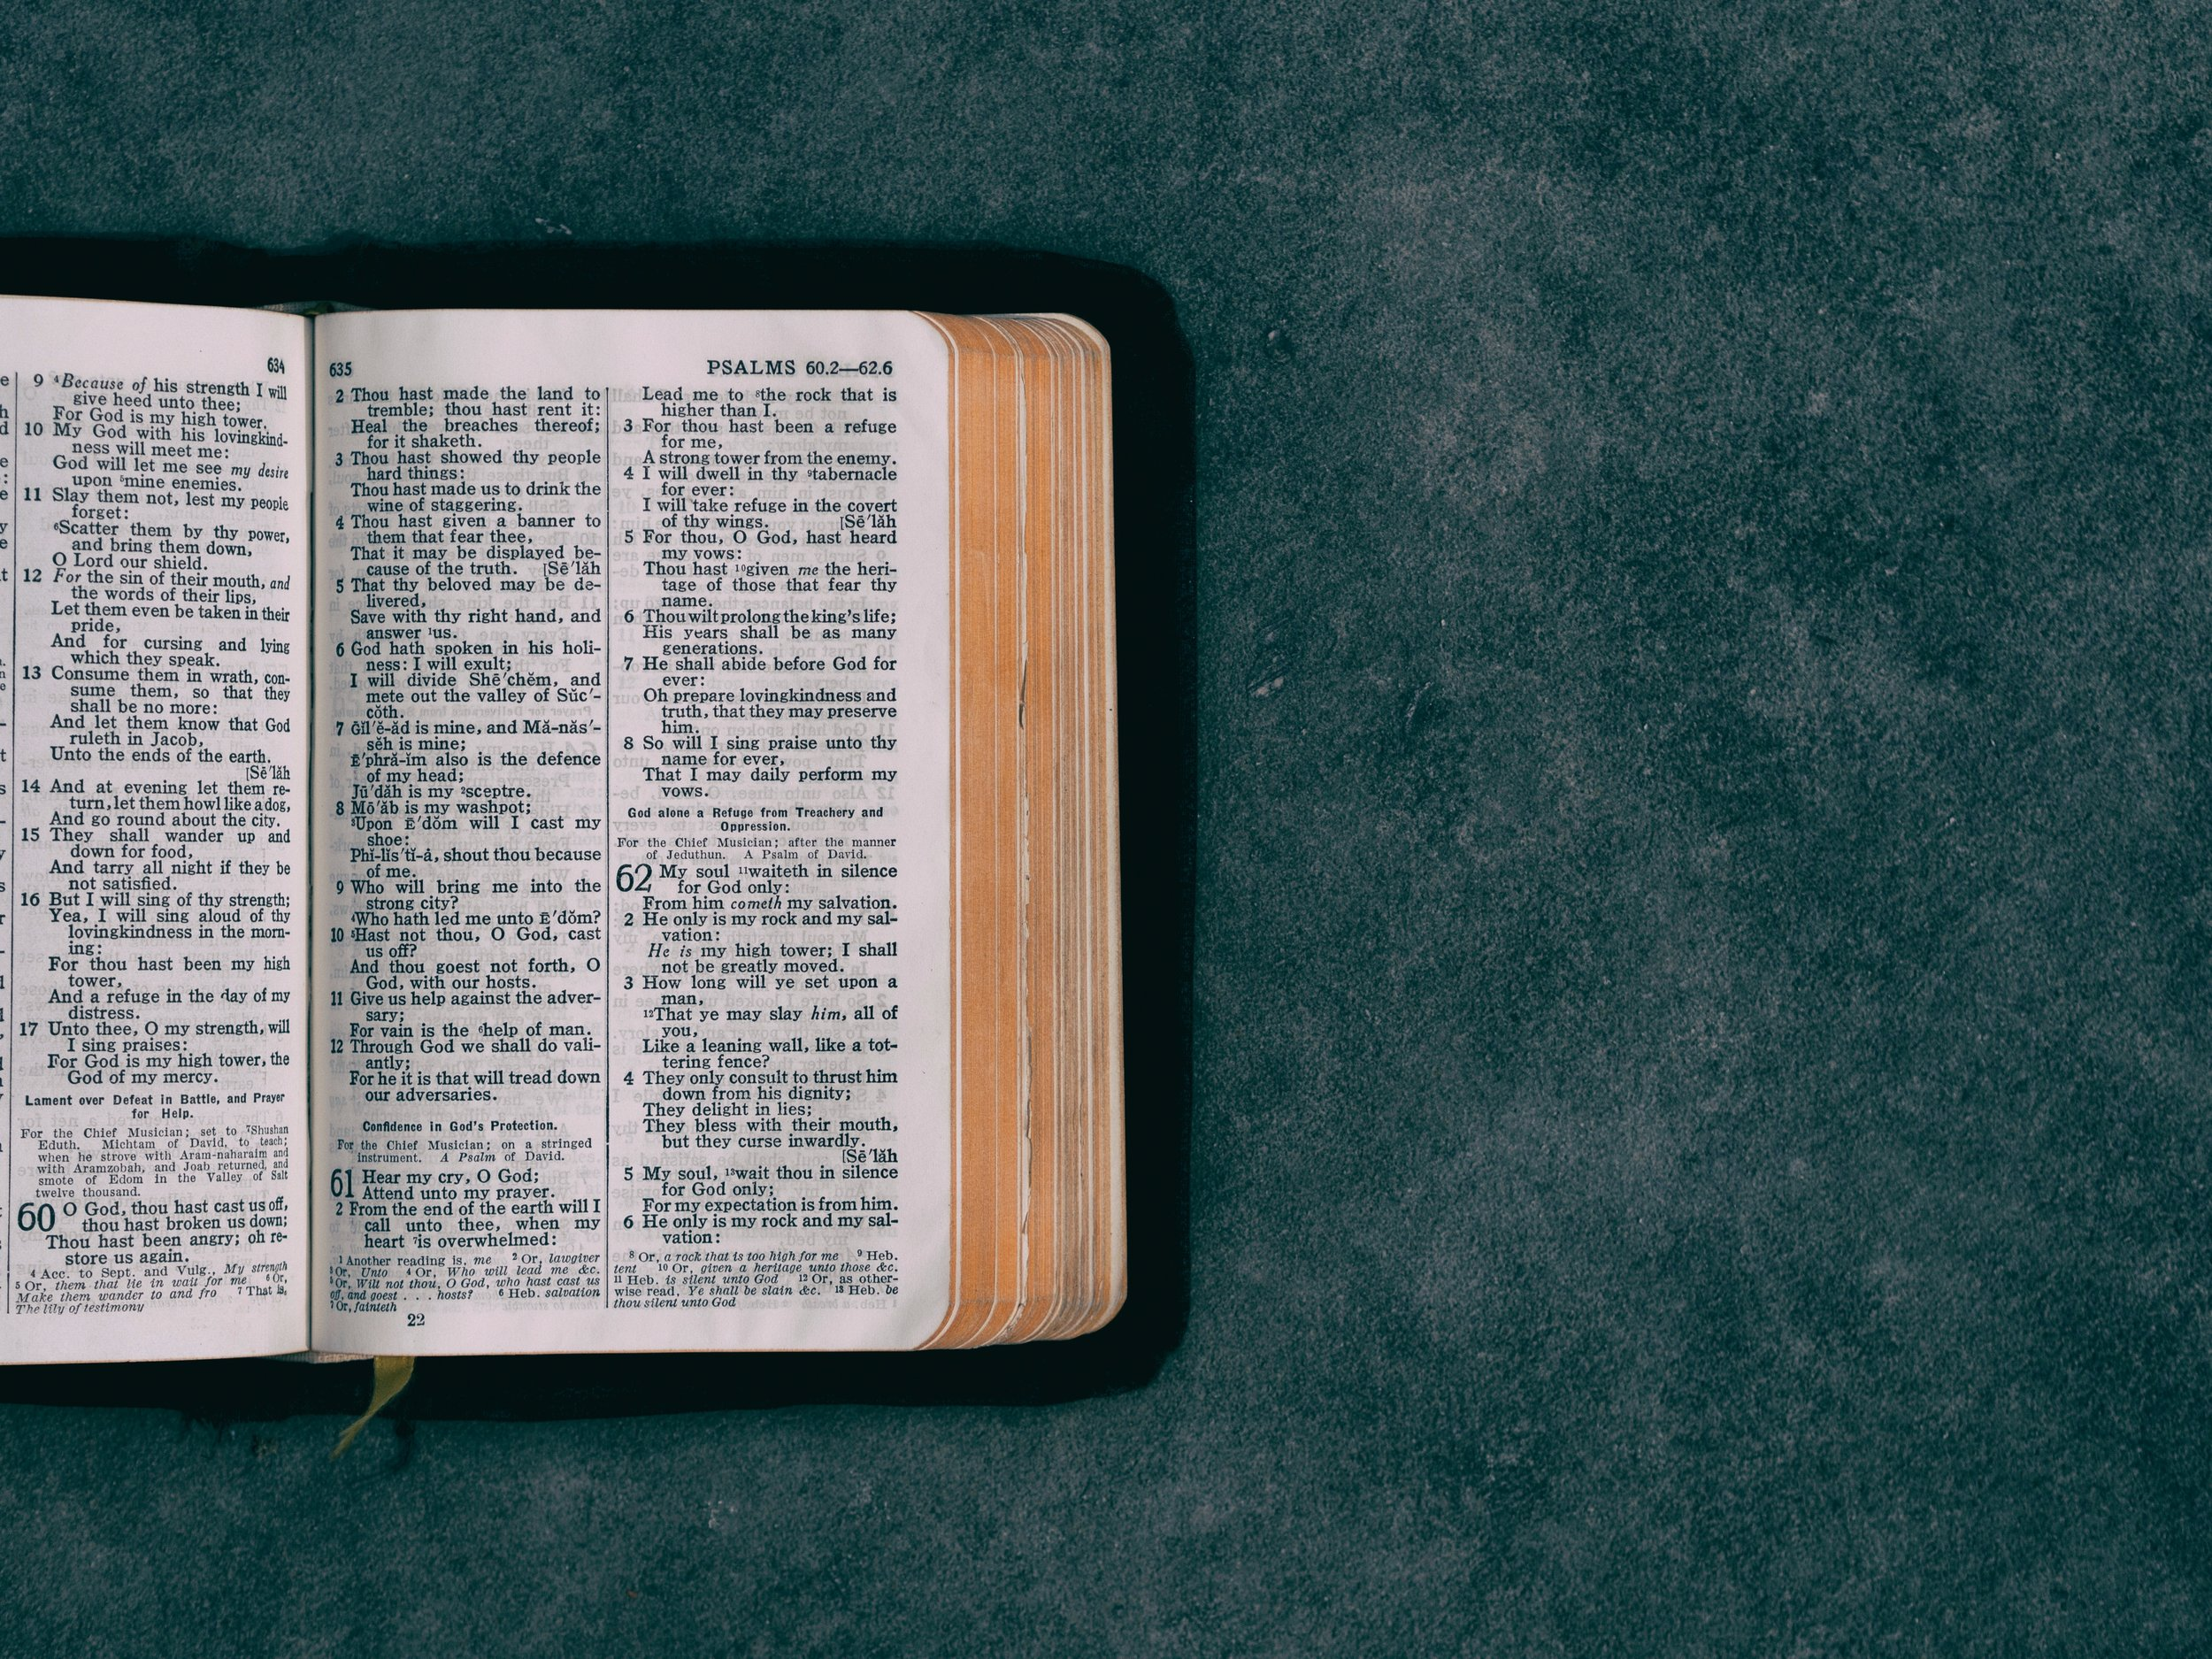 Special Editions - At times we utilize single session studies to cover special topics which are often prompted by questions, apologetics, and current events.